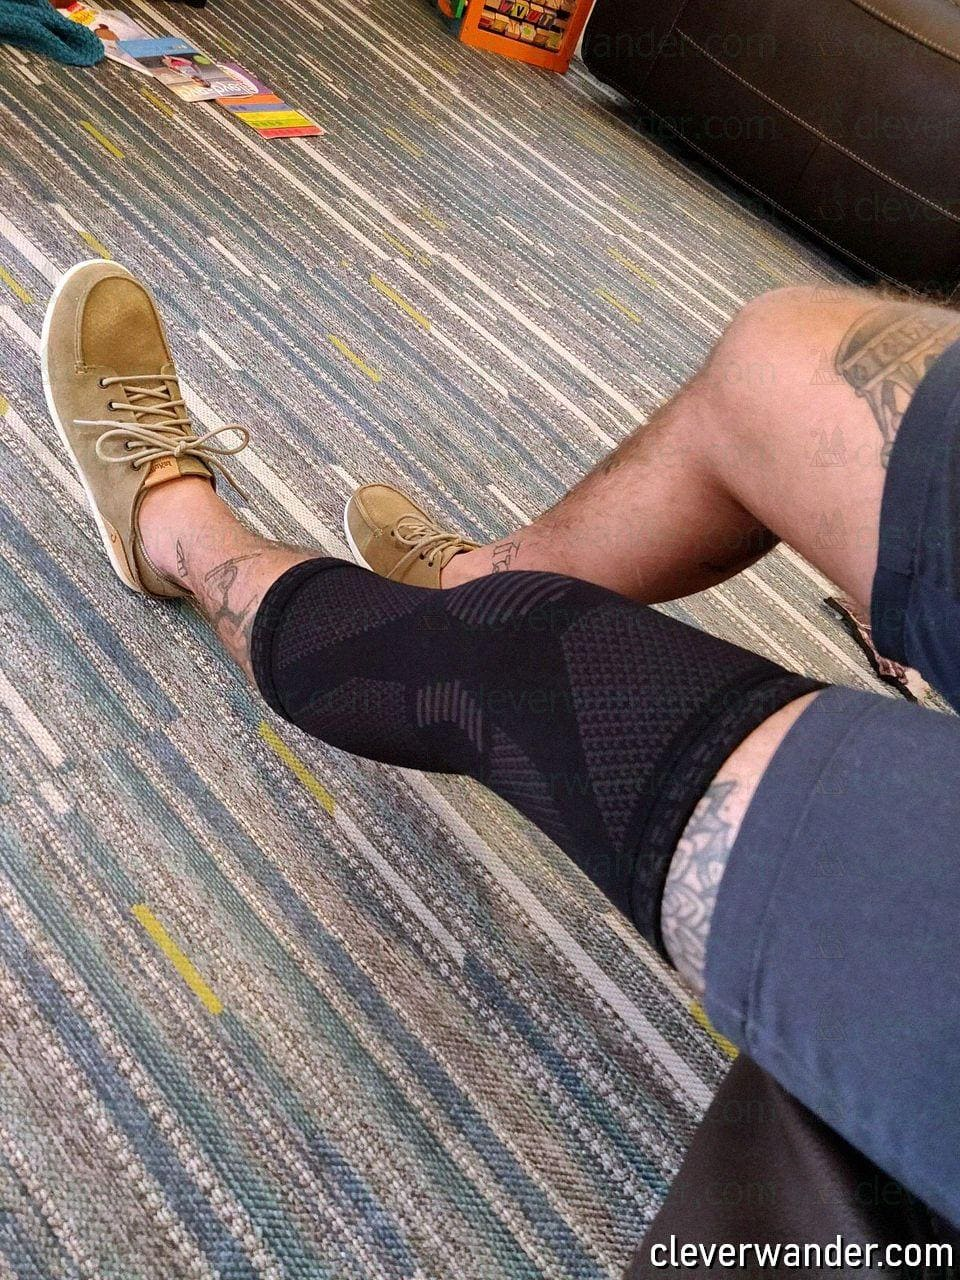 POWERLIX Knee Compression Sleeve - image review 4